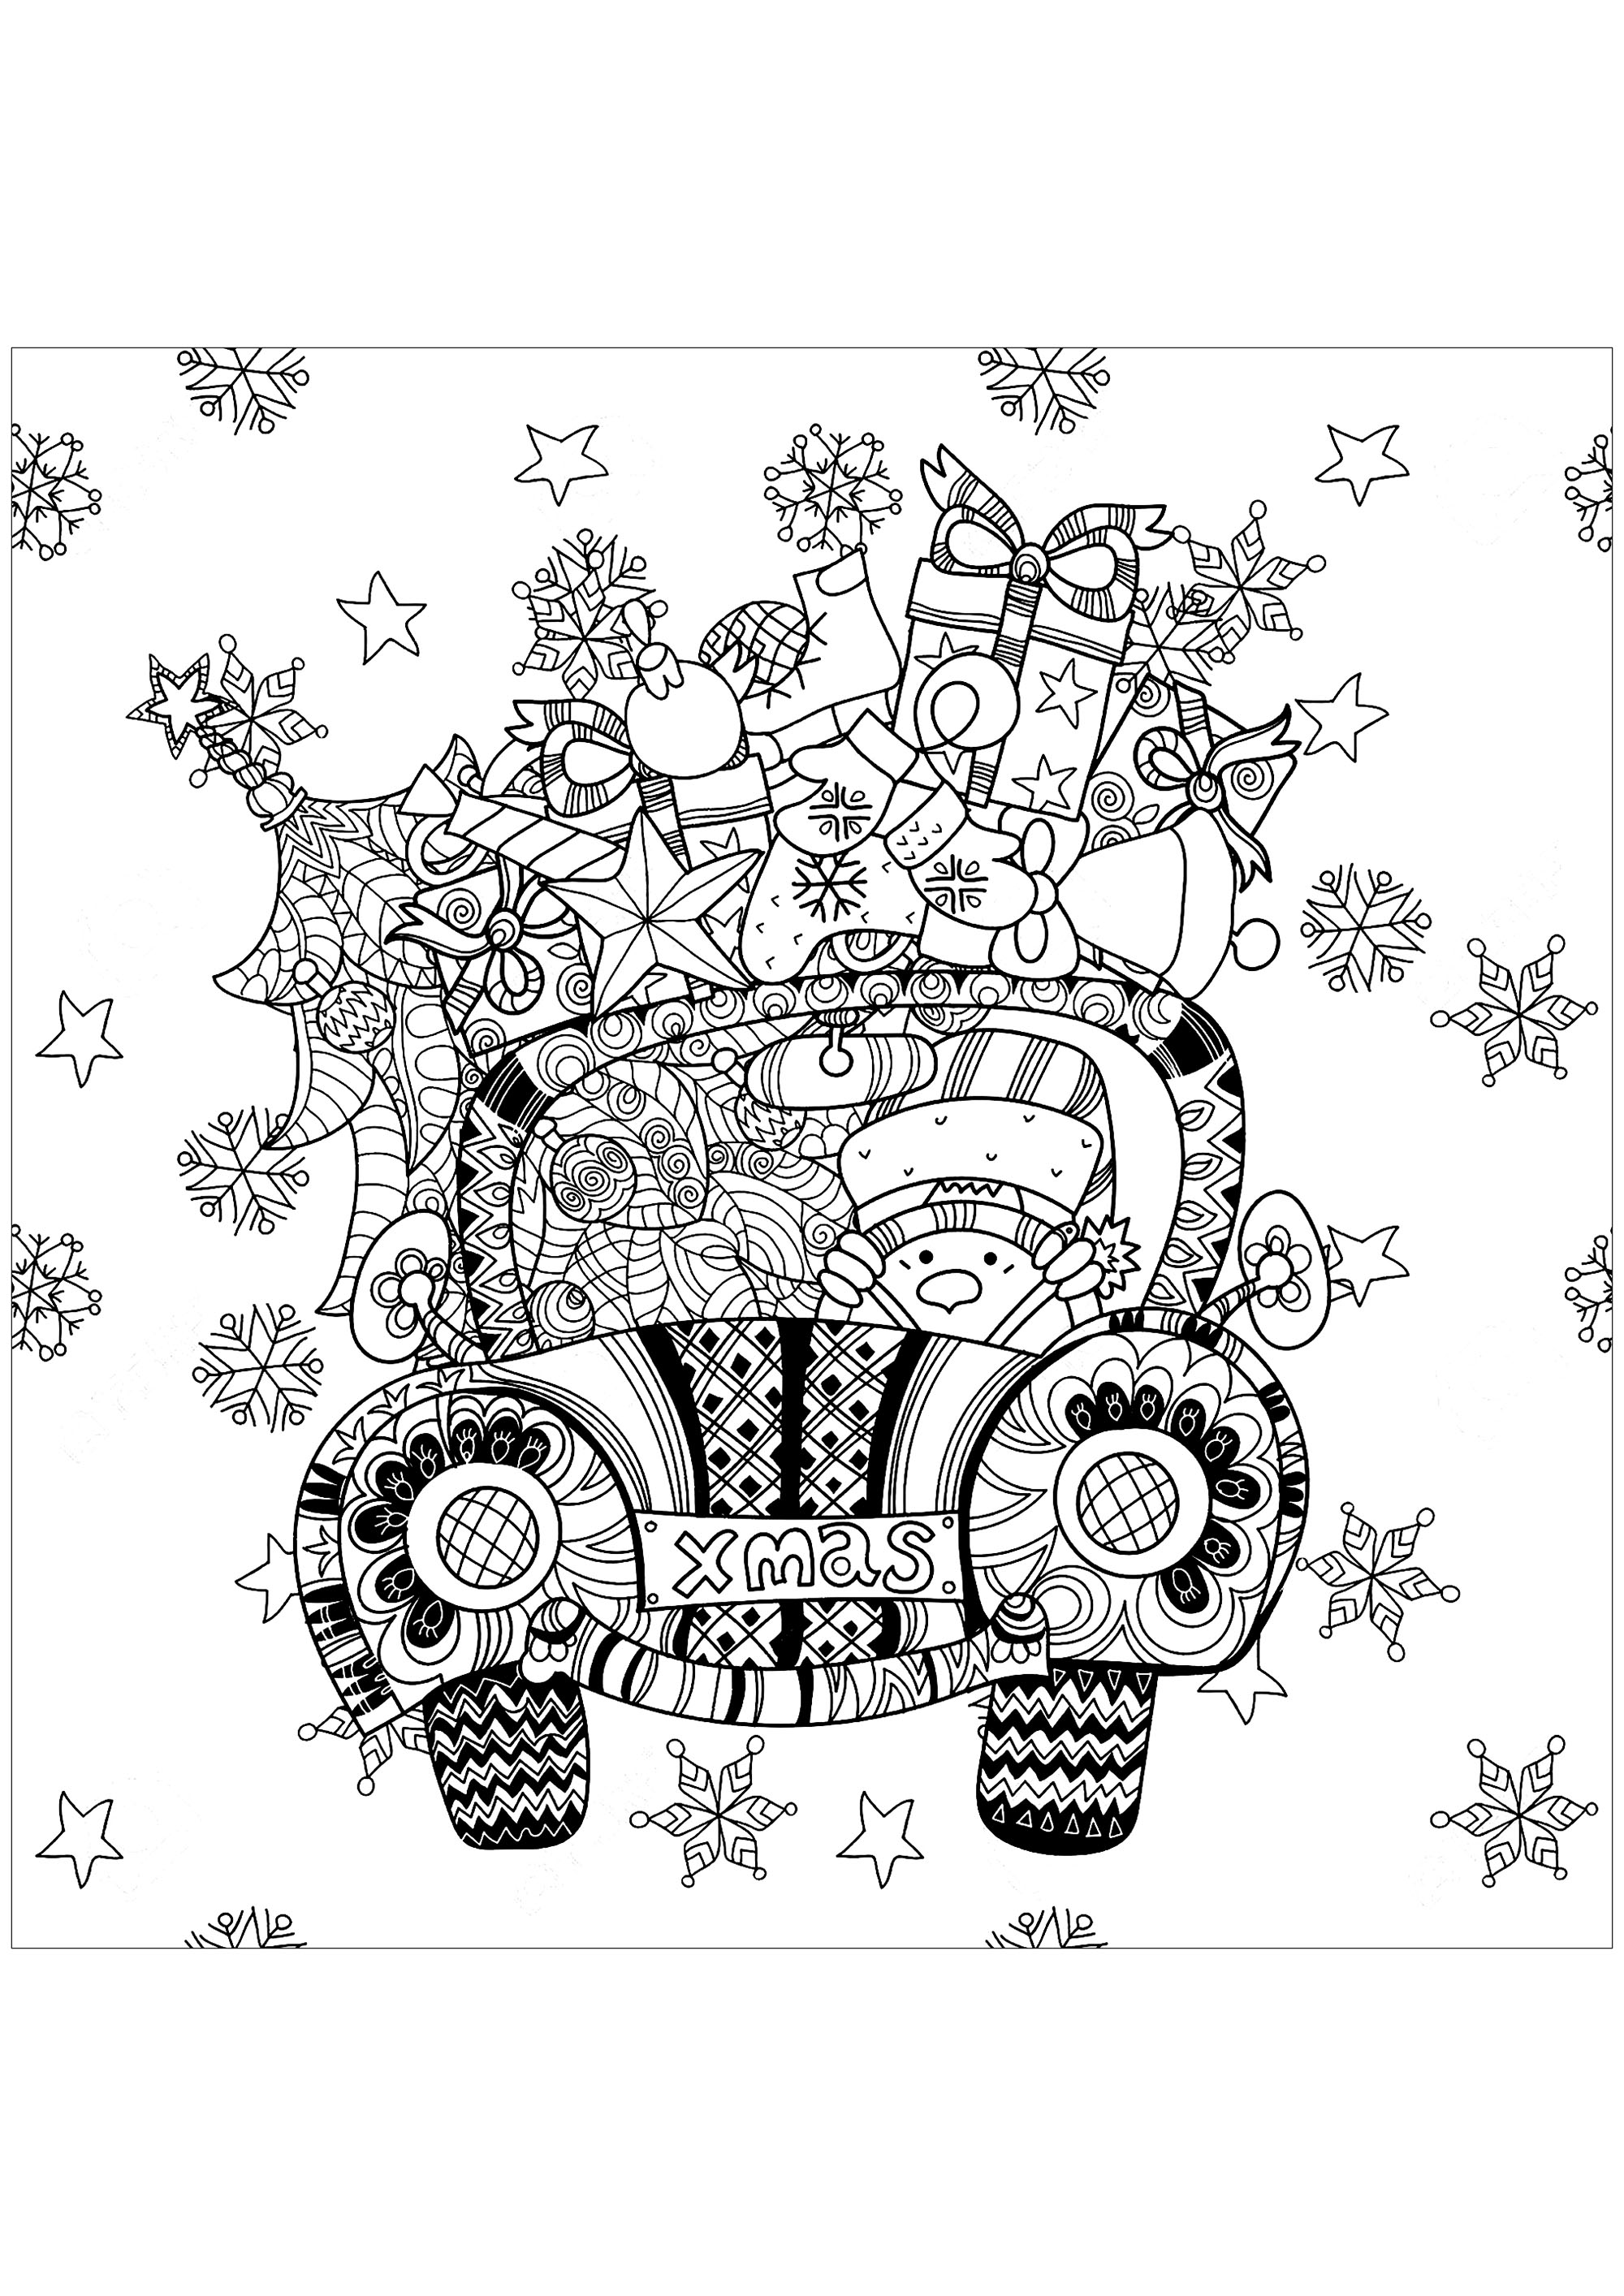 Coloring Page Christmas Gifts In A Car Add Some Colors To These That Fill This Little Driven By Snowman